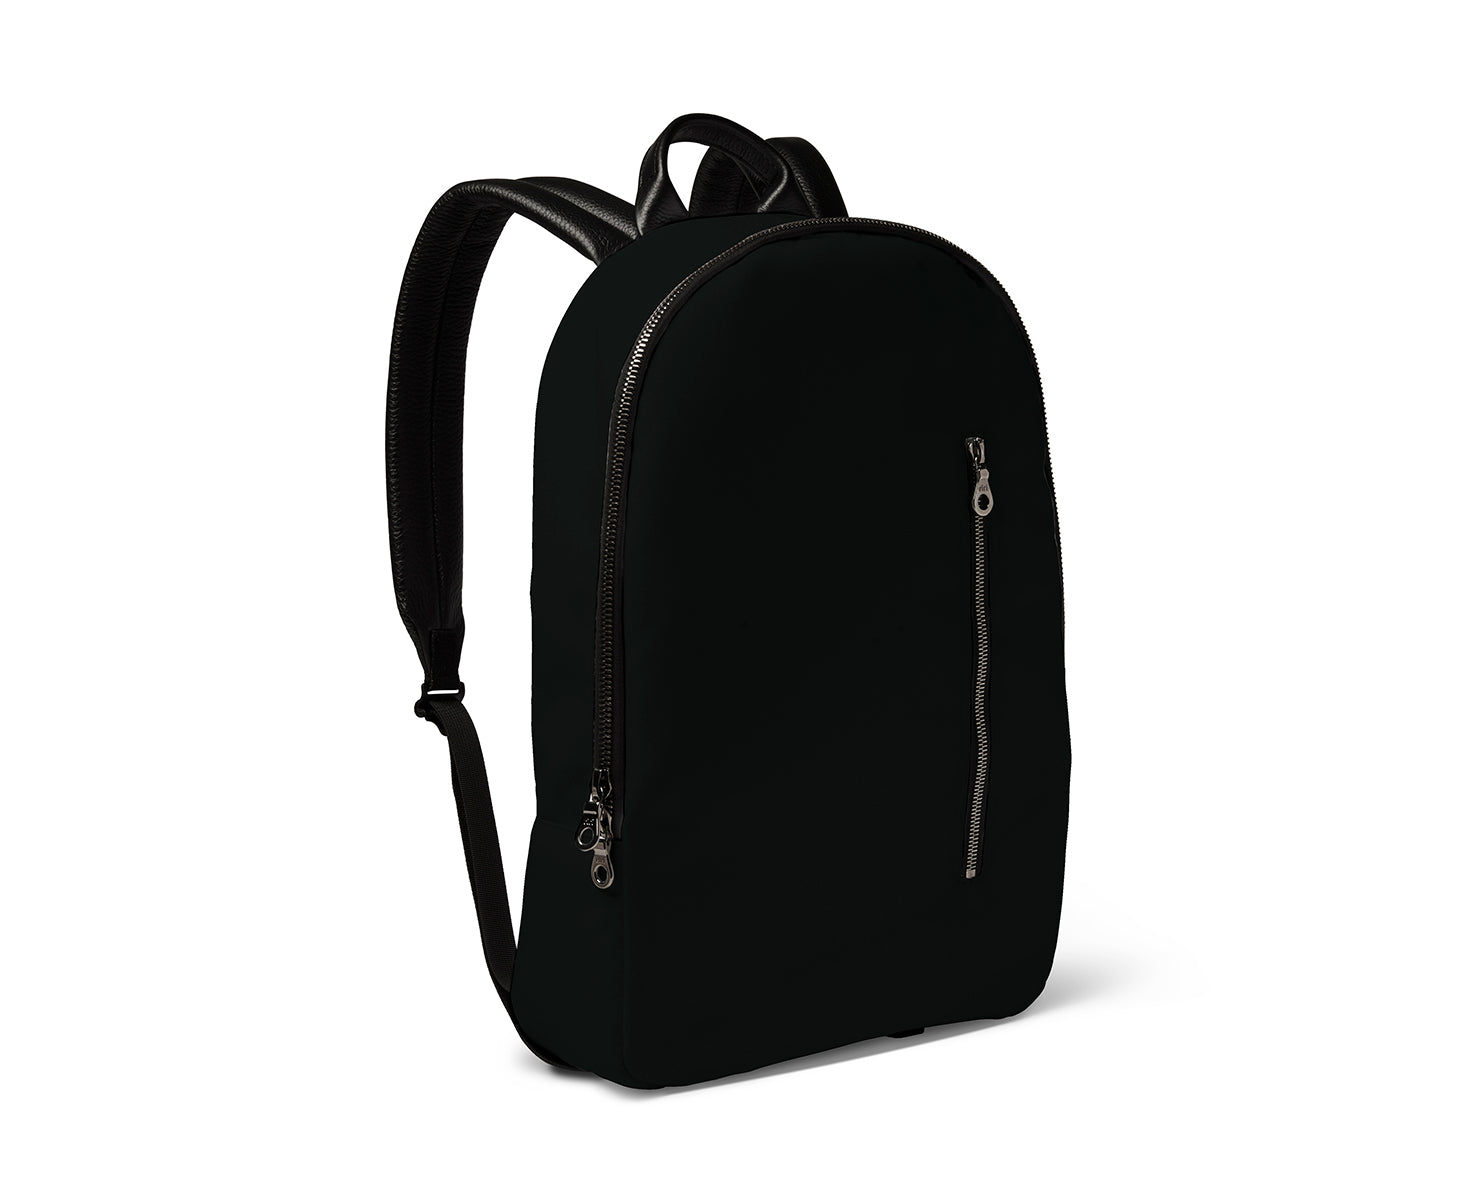 SPECIAL OPS BACKPACK 3.0 | KILLSPENCER® - Black Italian Nylon